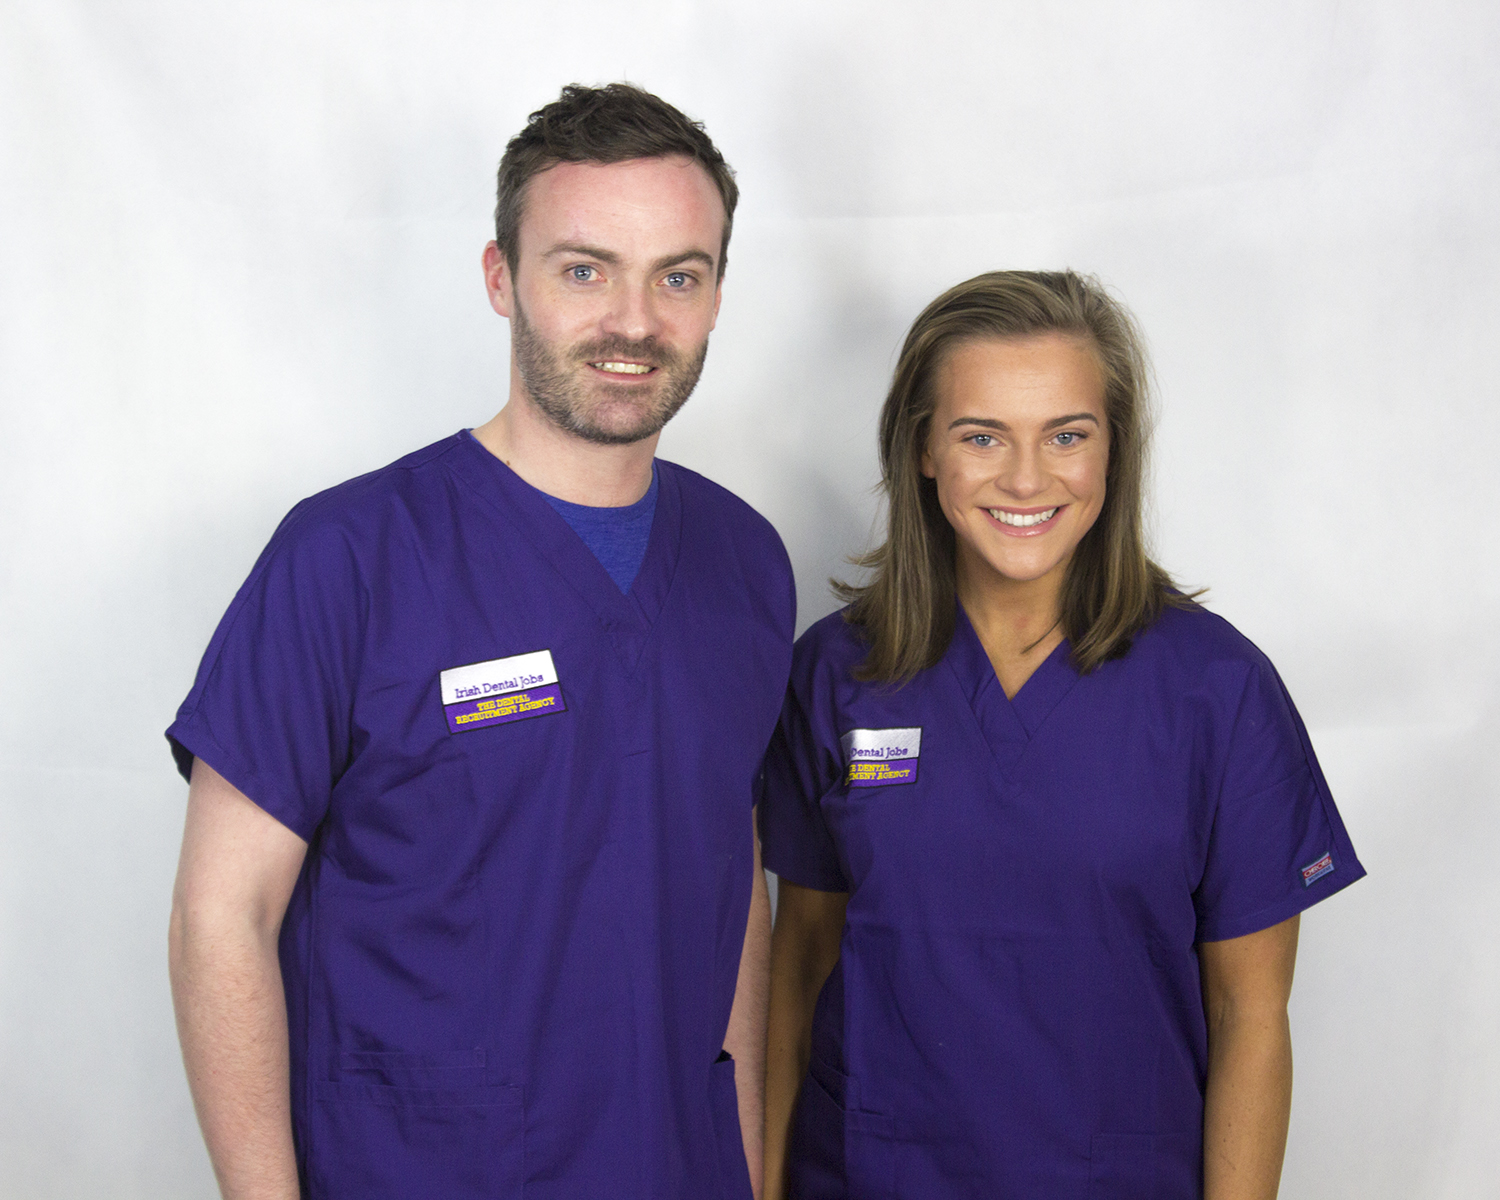 Thomas and Alice wearing scrubs